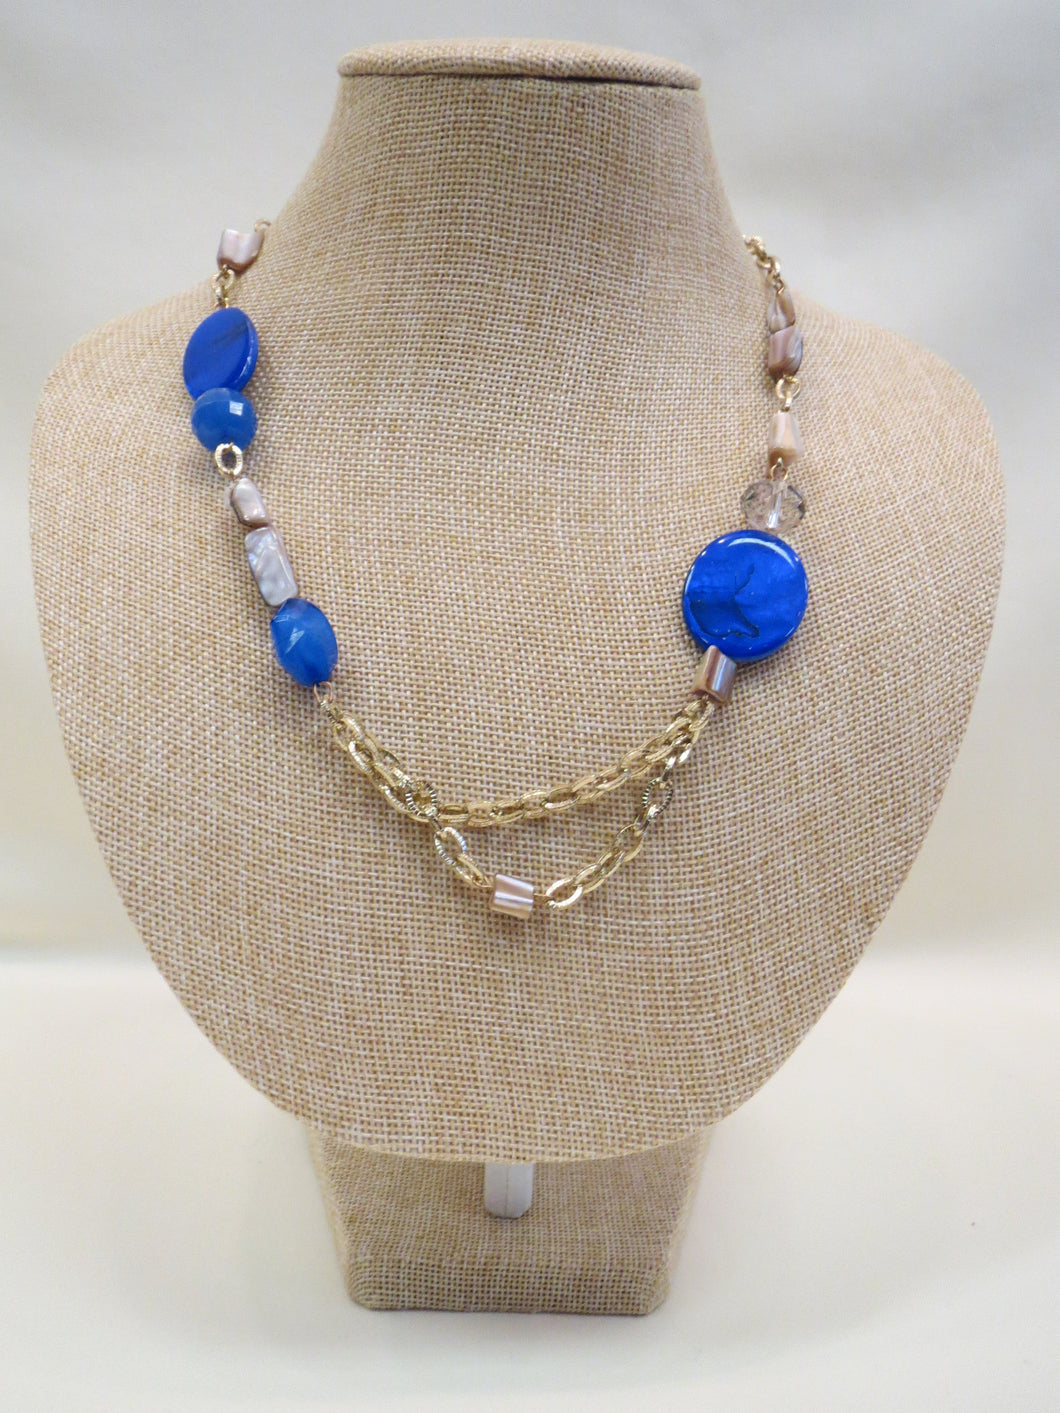 ADO | Blue Bead Gold Chain Necklace Short - All Decd Out